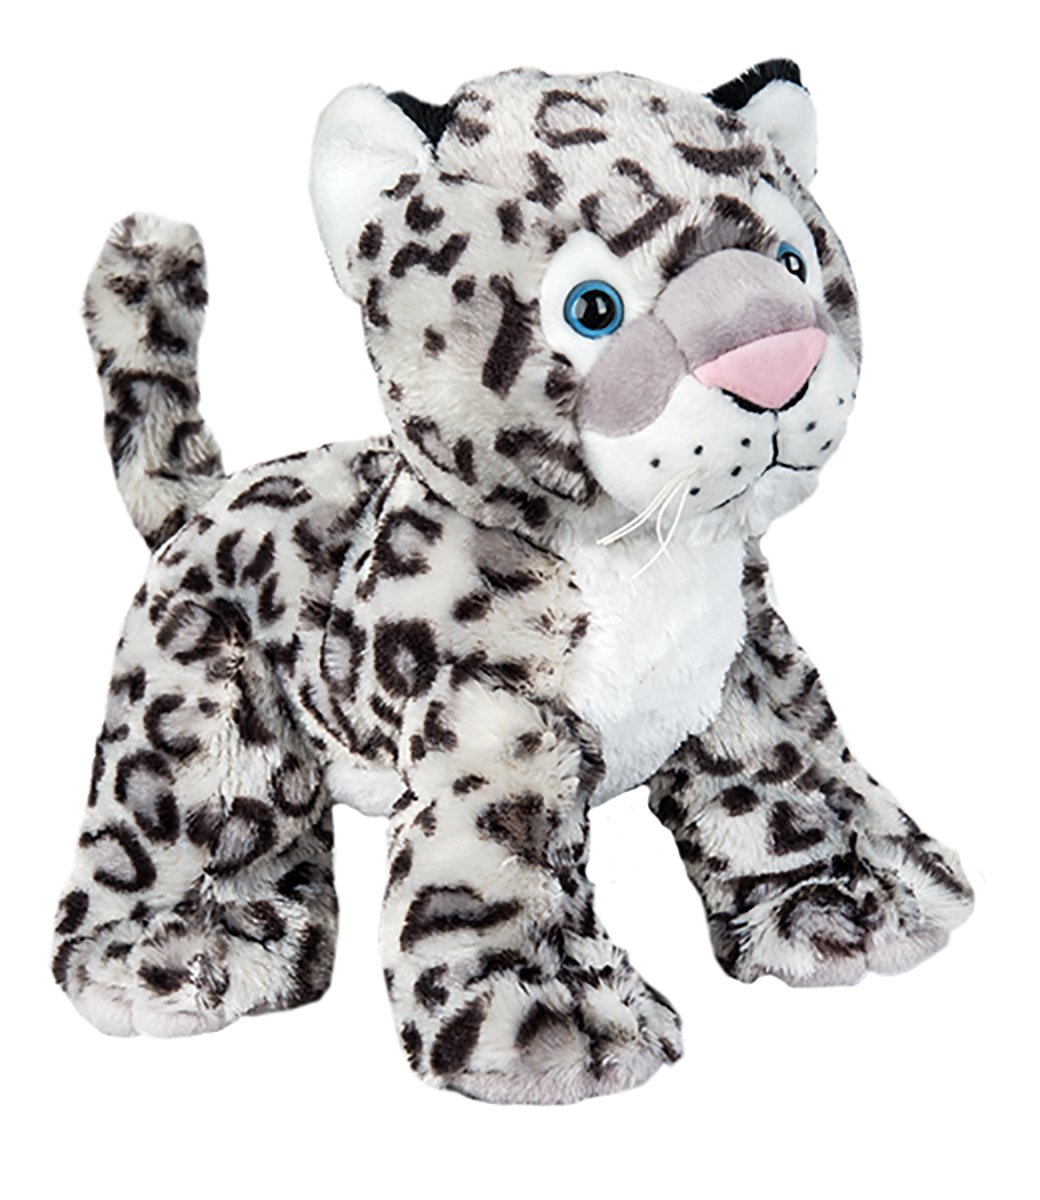 Kit With Cute Backpack No Sew Teddy Mountain NY Winter the Snow Leopard Build Your Own Stuffed Animal